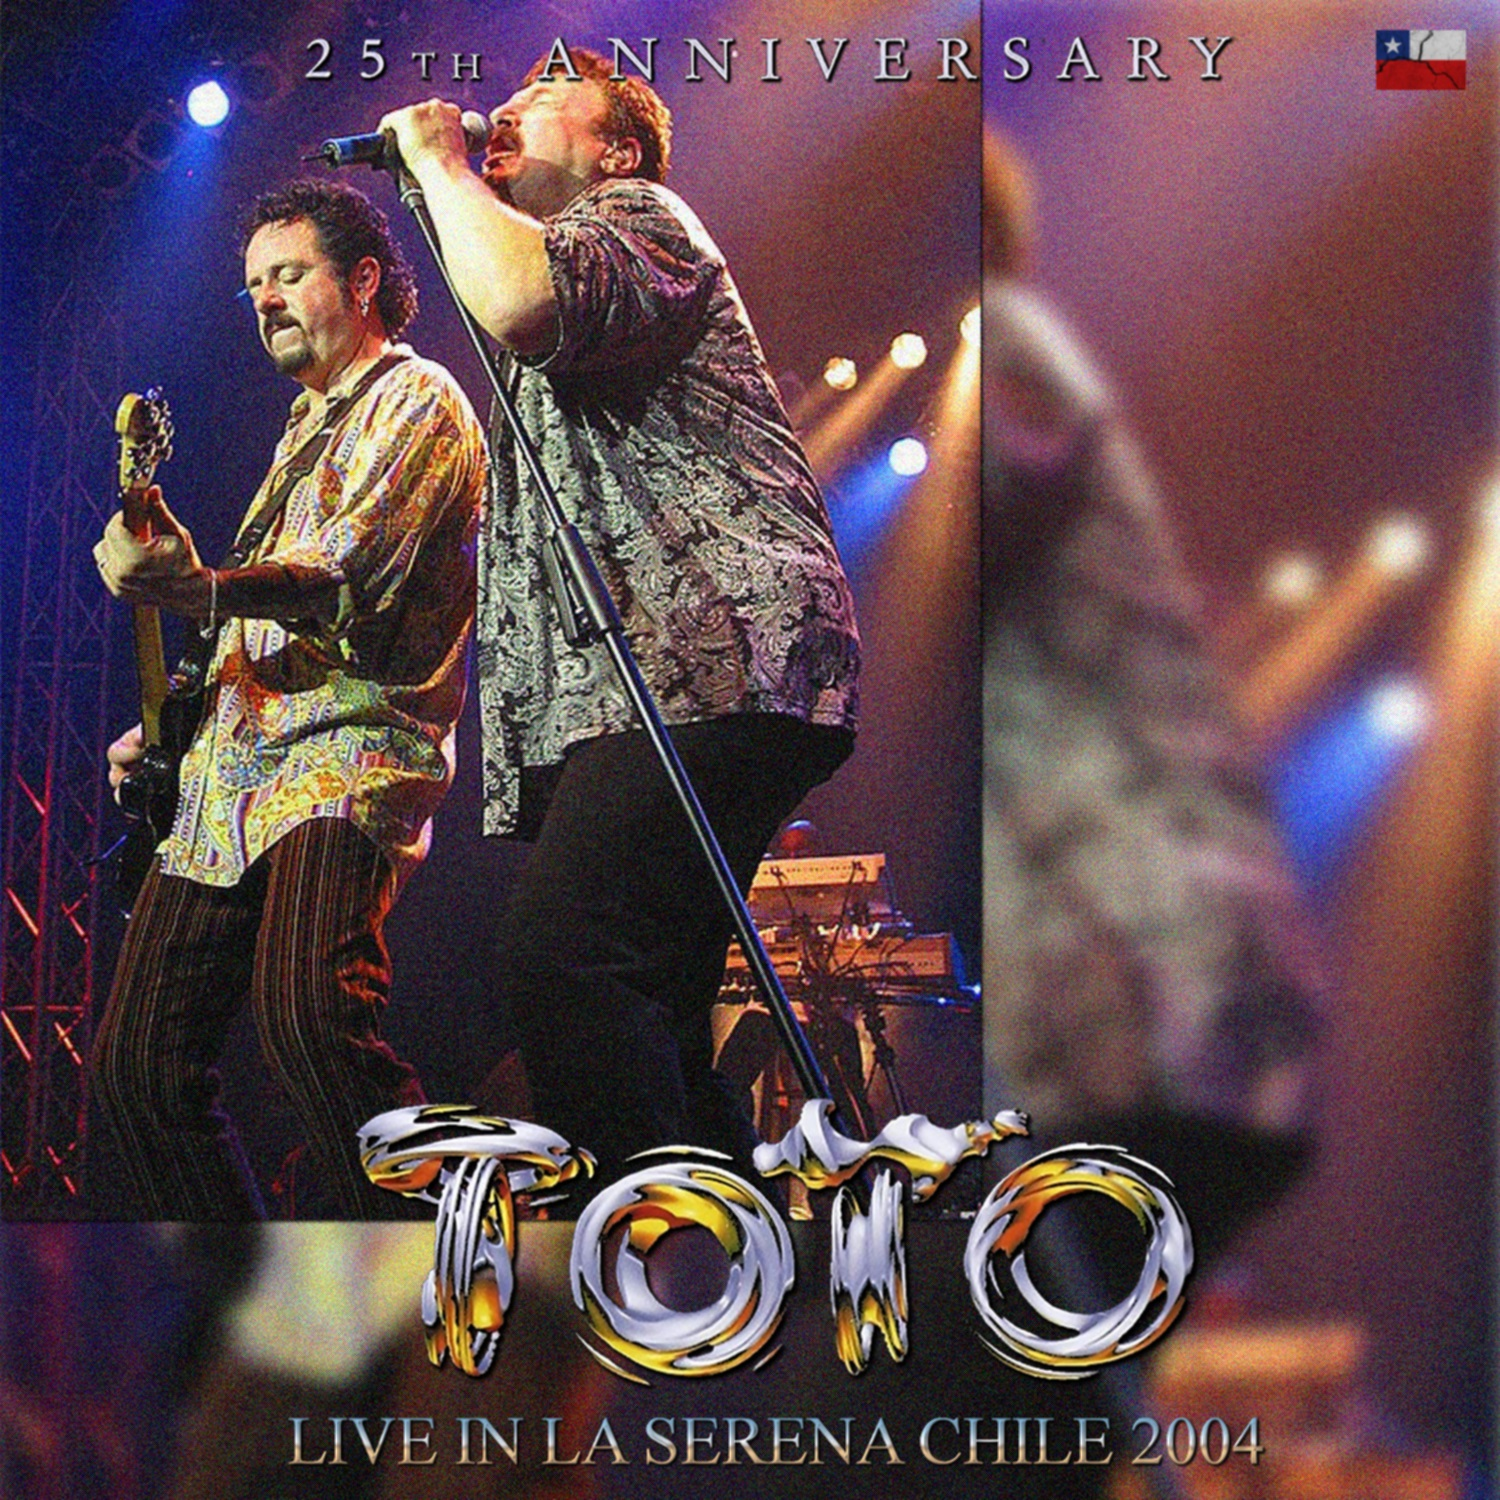 コレクターズCD TOTO - 25th Anniversary Tour (Through the Looking Glass Tour)